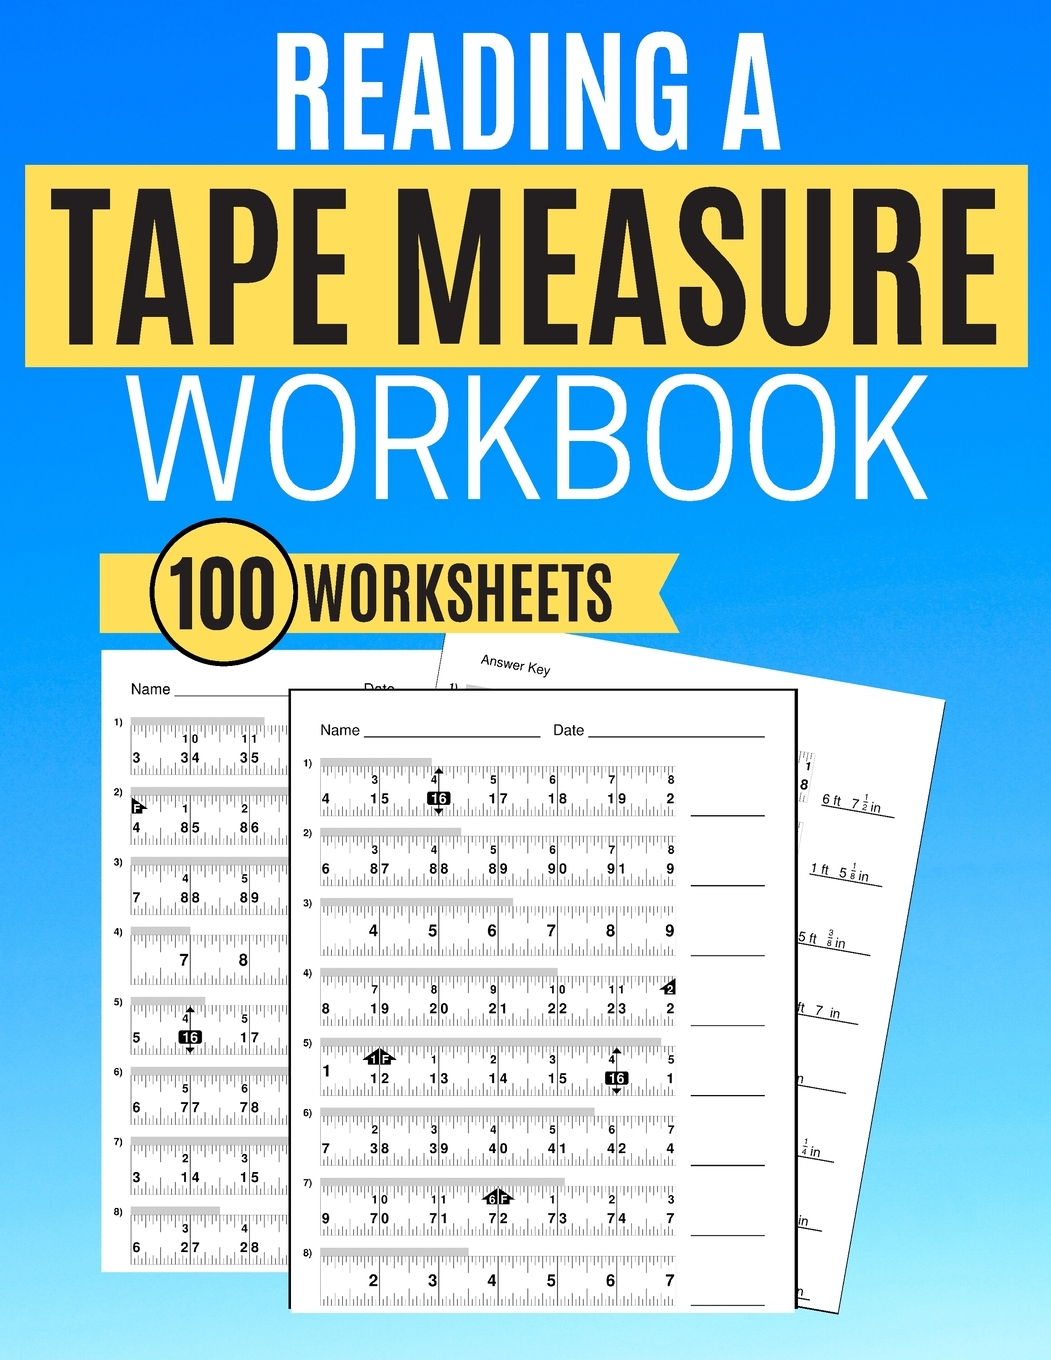 Reading A Tape Measure Workbook 100 Worksheets Paperback